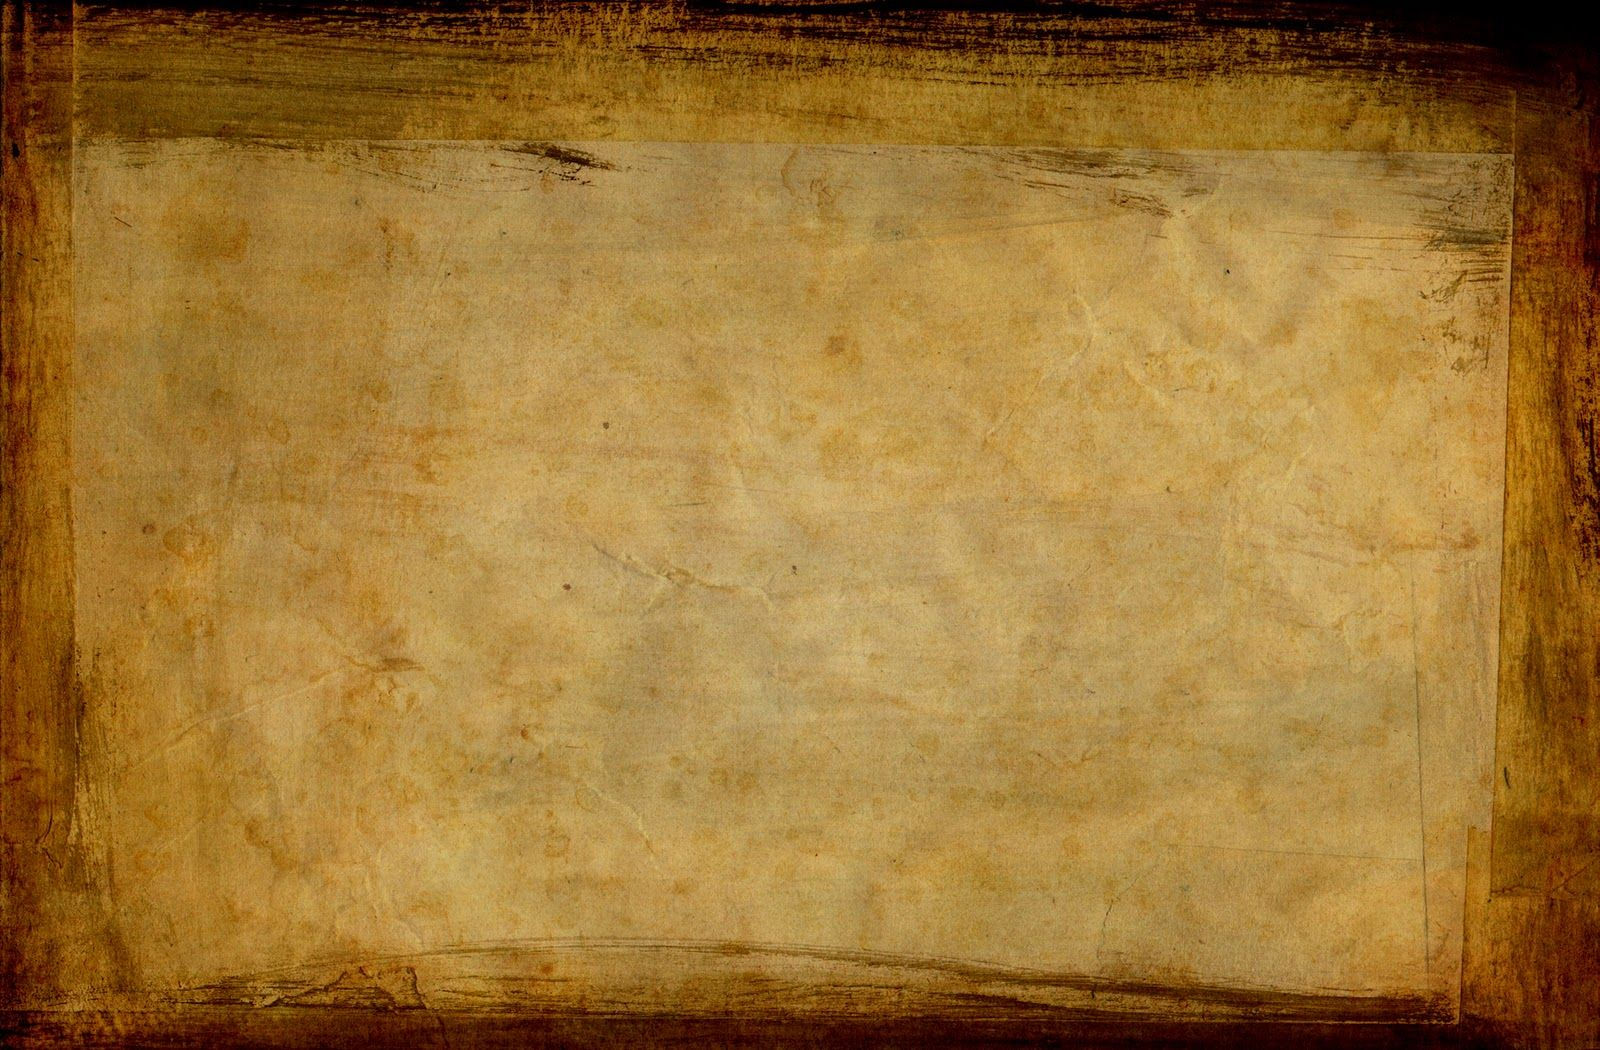 Old style paper frame backgrounds for powerpoint templates 3d cg old style paper frame backgrounds for powerpoint templates toneelgroepblik Images